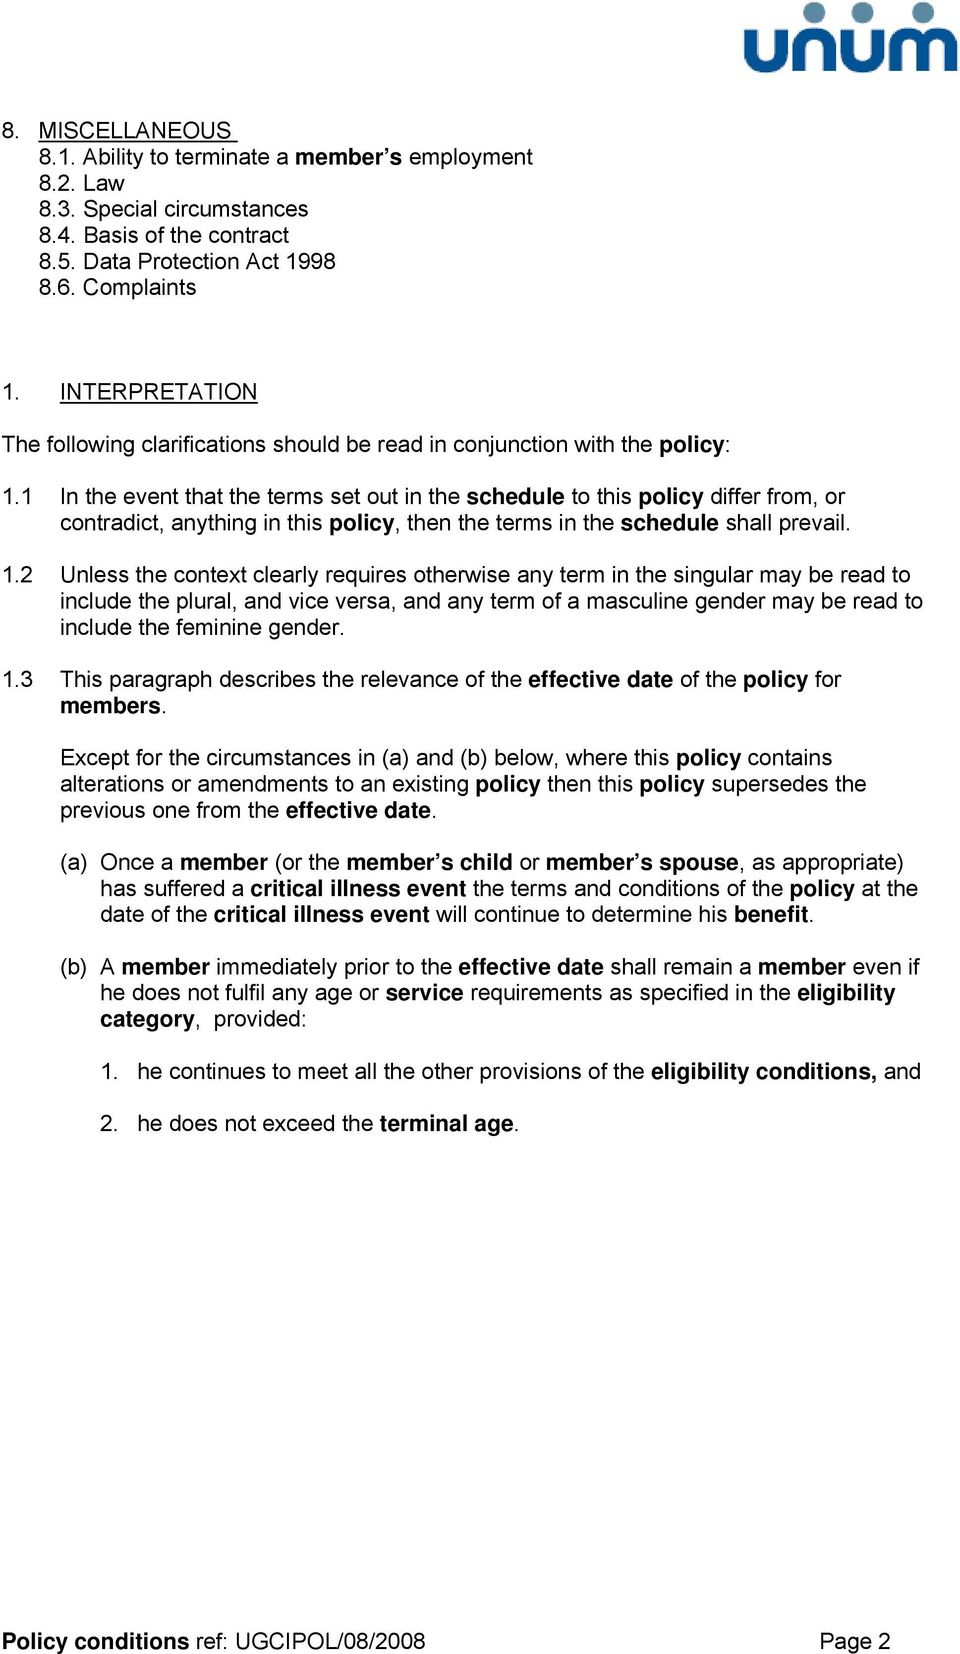 1 In the event that the terms set out in the schedule to this policy differ from, or contradict, anything in this policy, then the terms in the schedule shall prevail. 1.